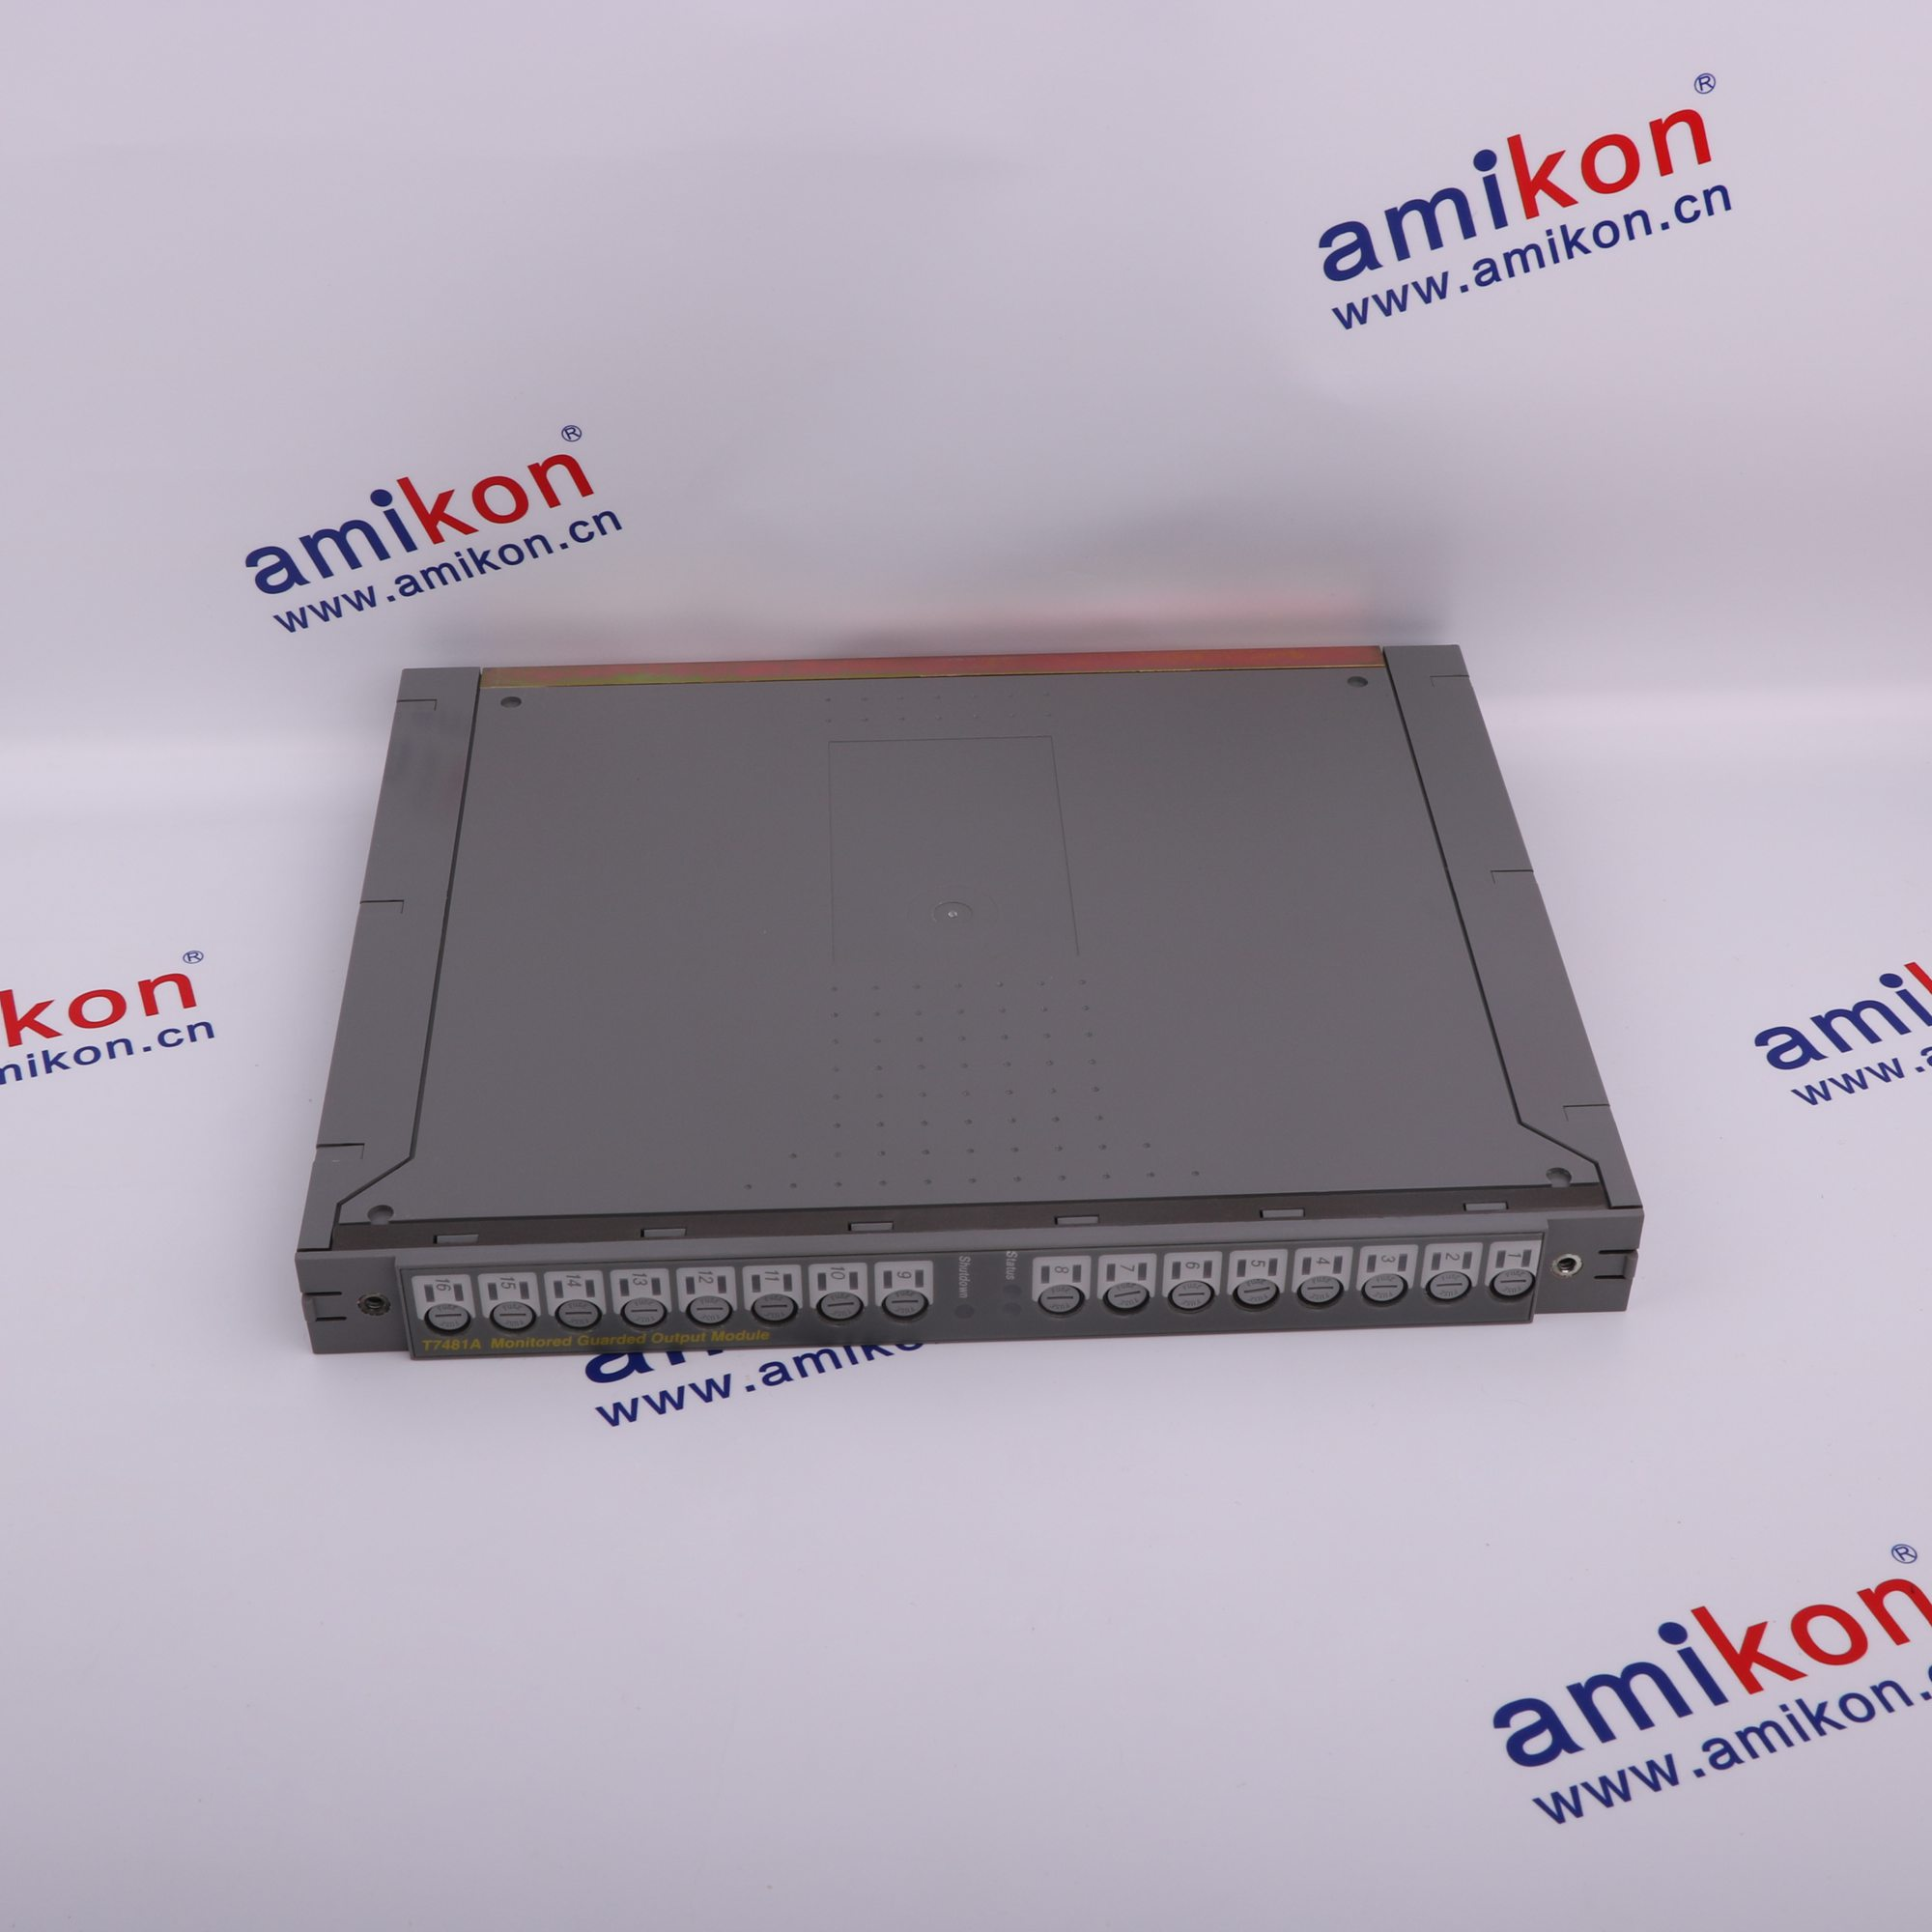 T8830 Trusted 40 channel Analogue Input FTA